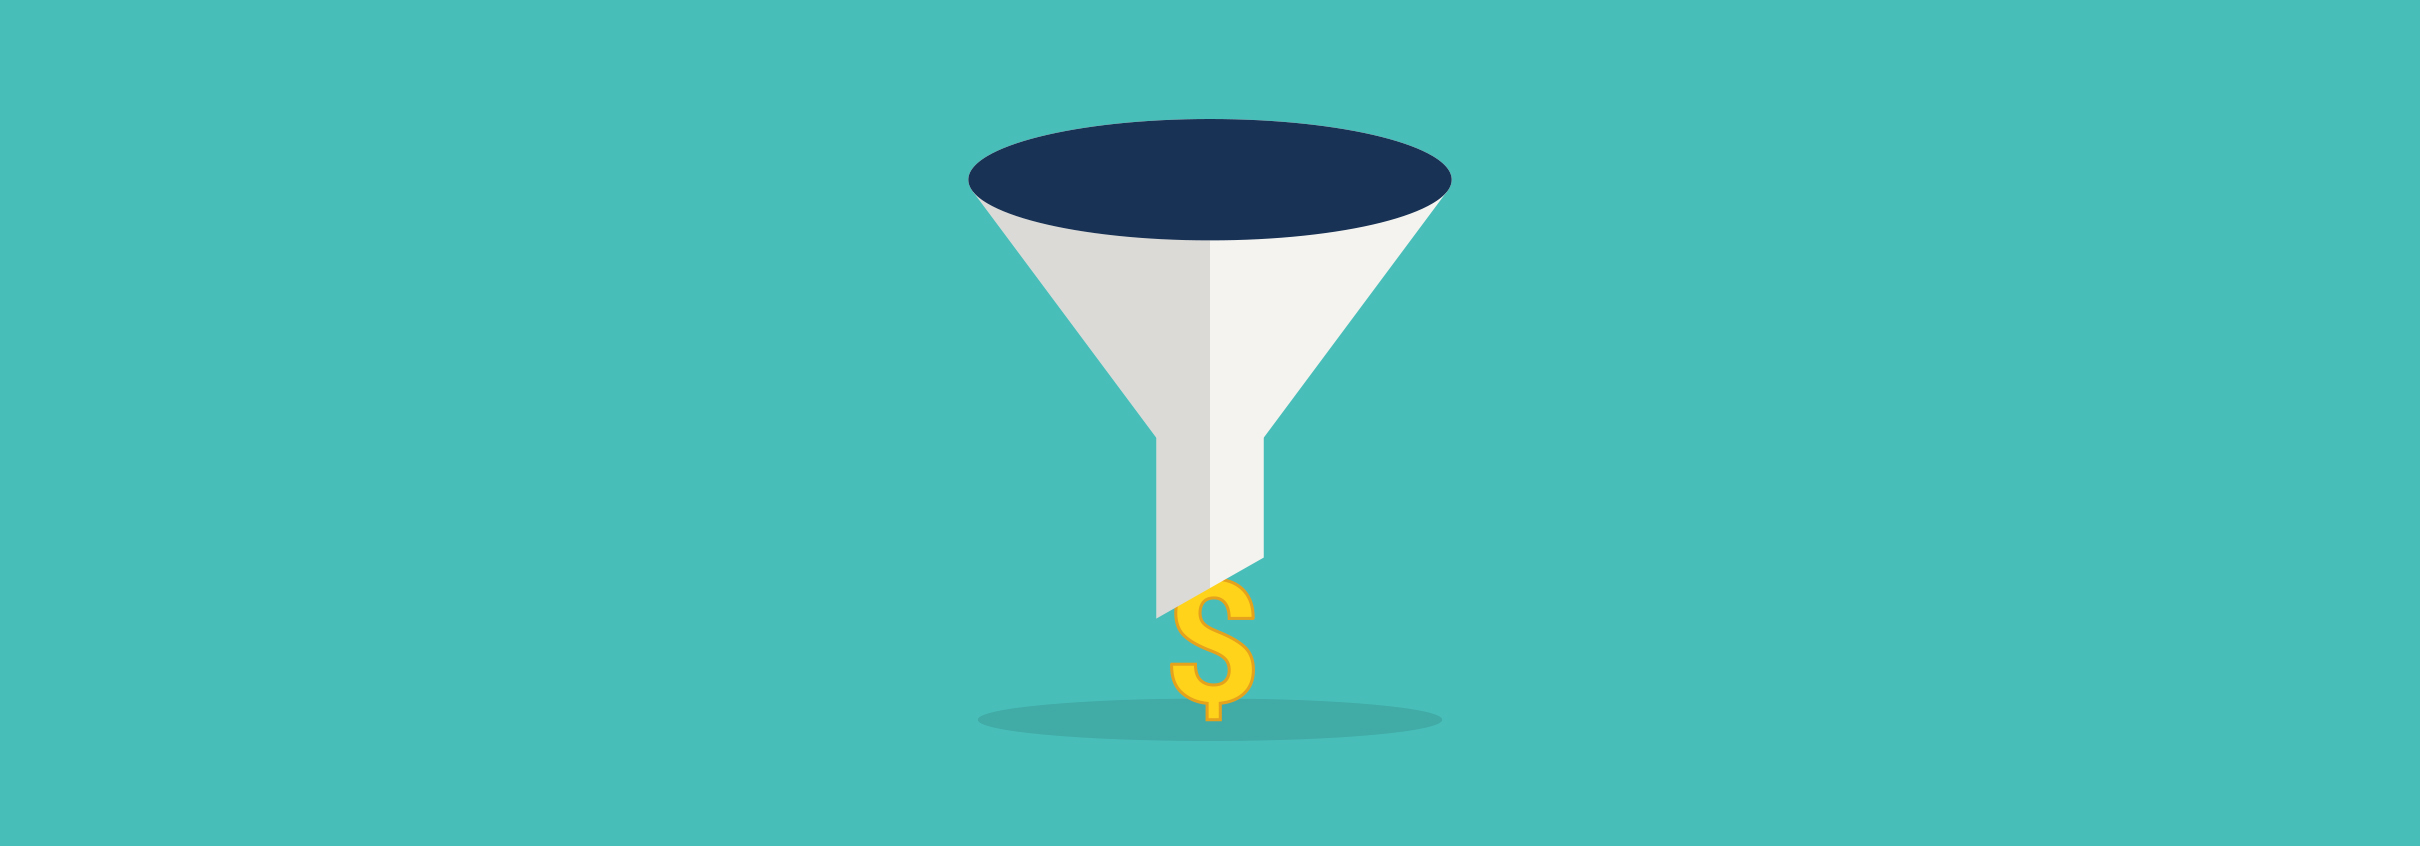 How to Connect Your Content Marketing to the Sales Funnel (Without Being Sleazy & Turning Off Your Audience)